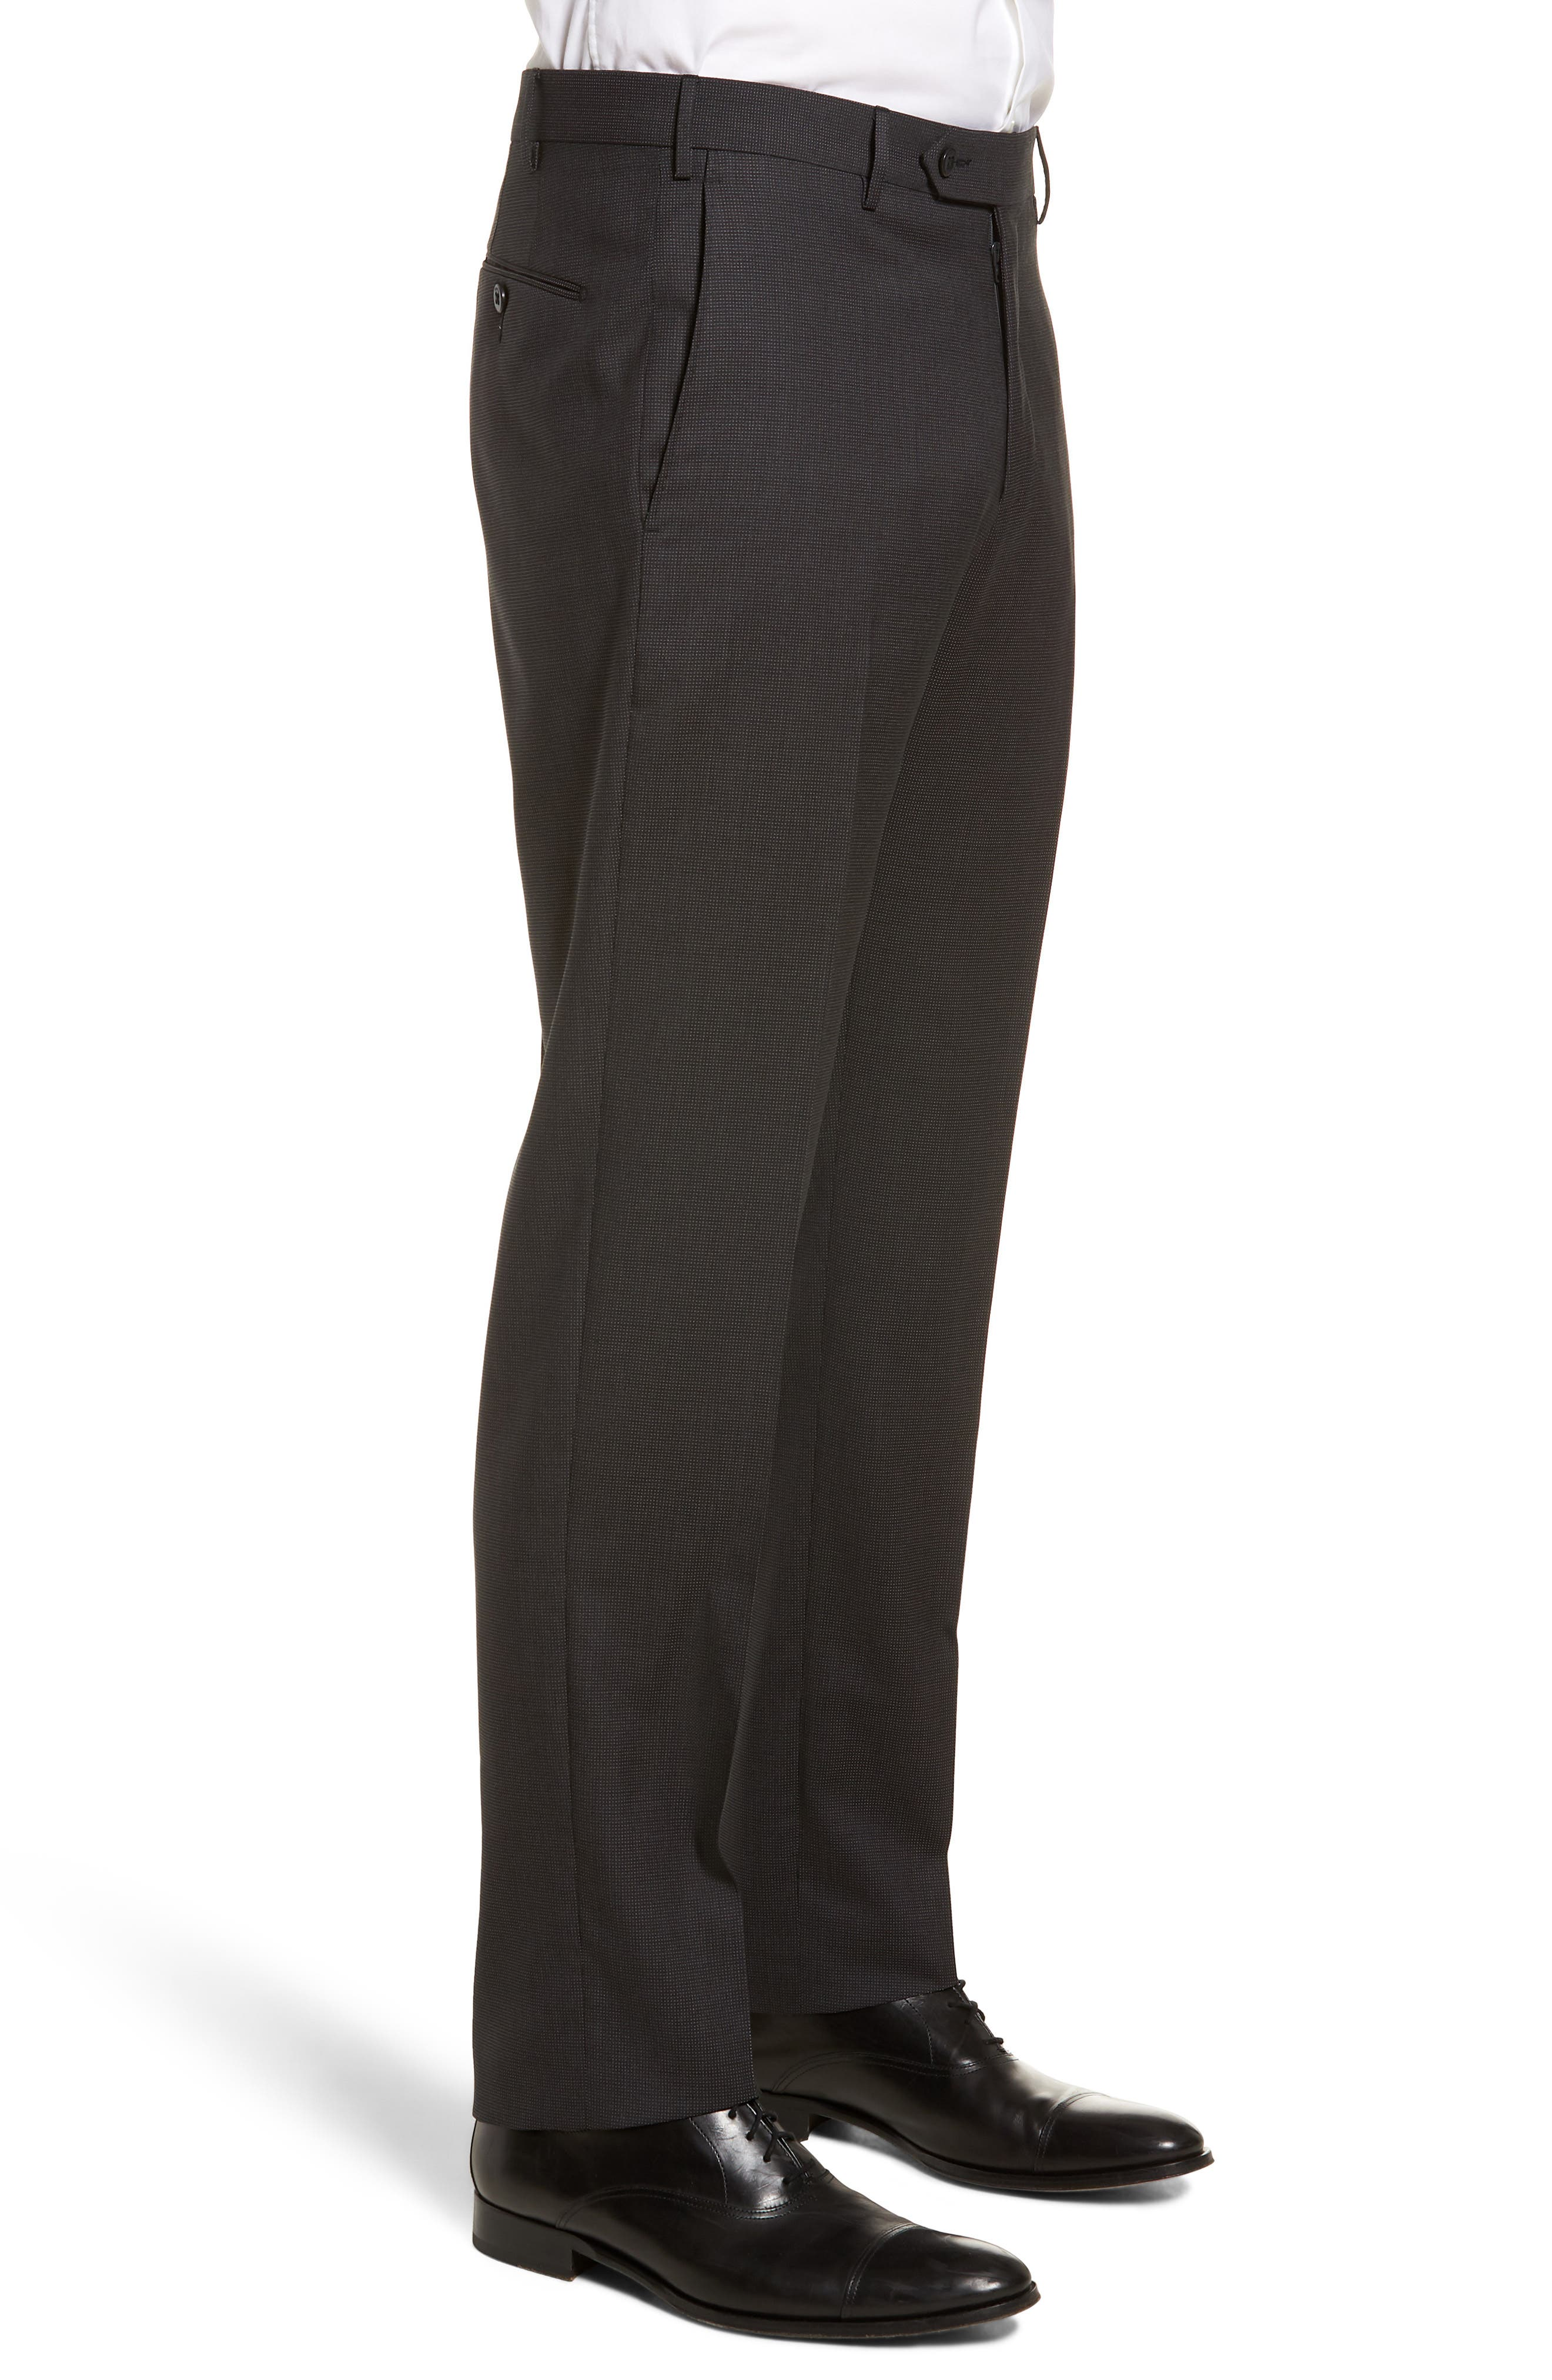 Parker Flat Front Pindot Wool Trousers,                             Alternate thumbnail 3, color,                             020